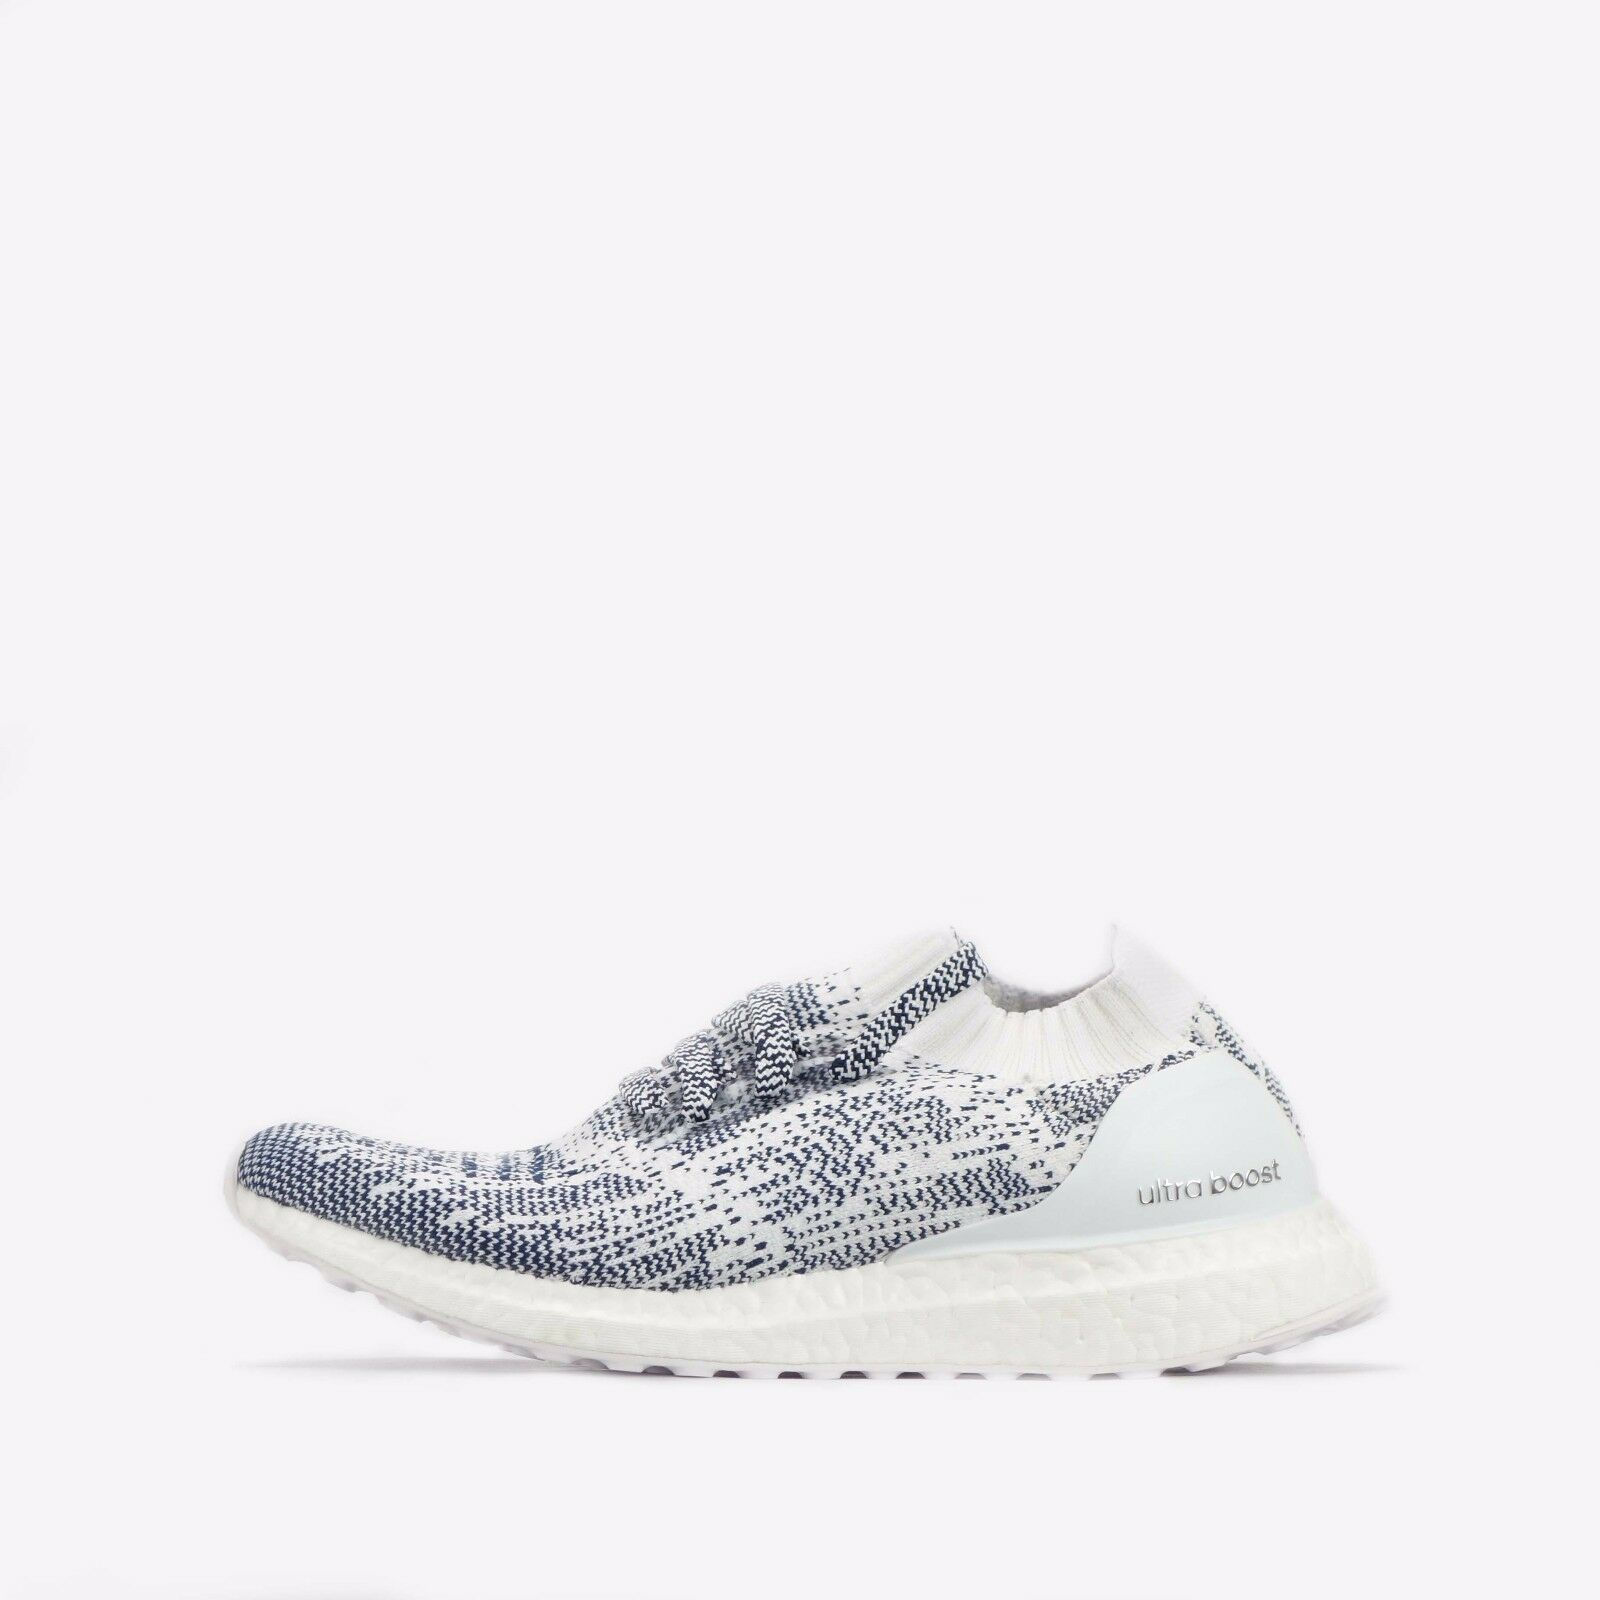 Adidas Ultra Boost Uncaged Men's Running Schuhes